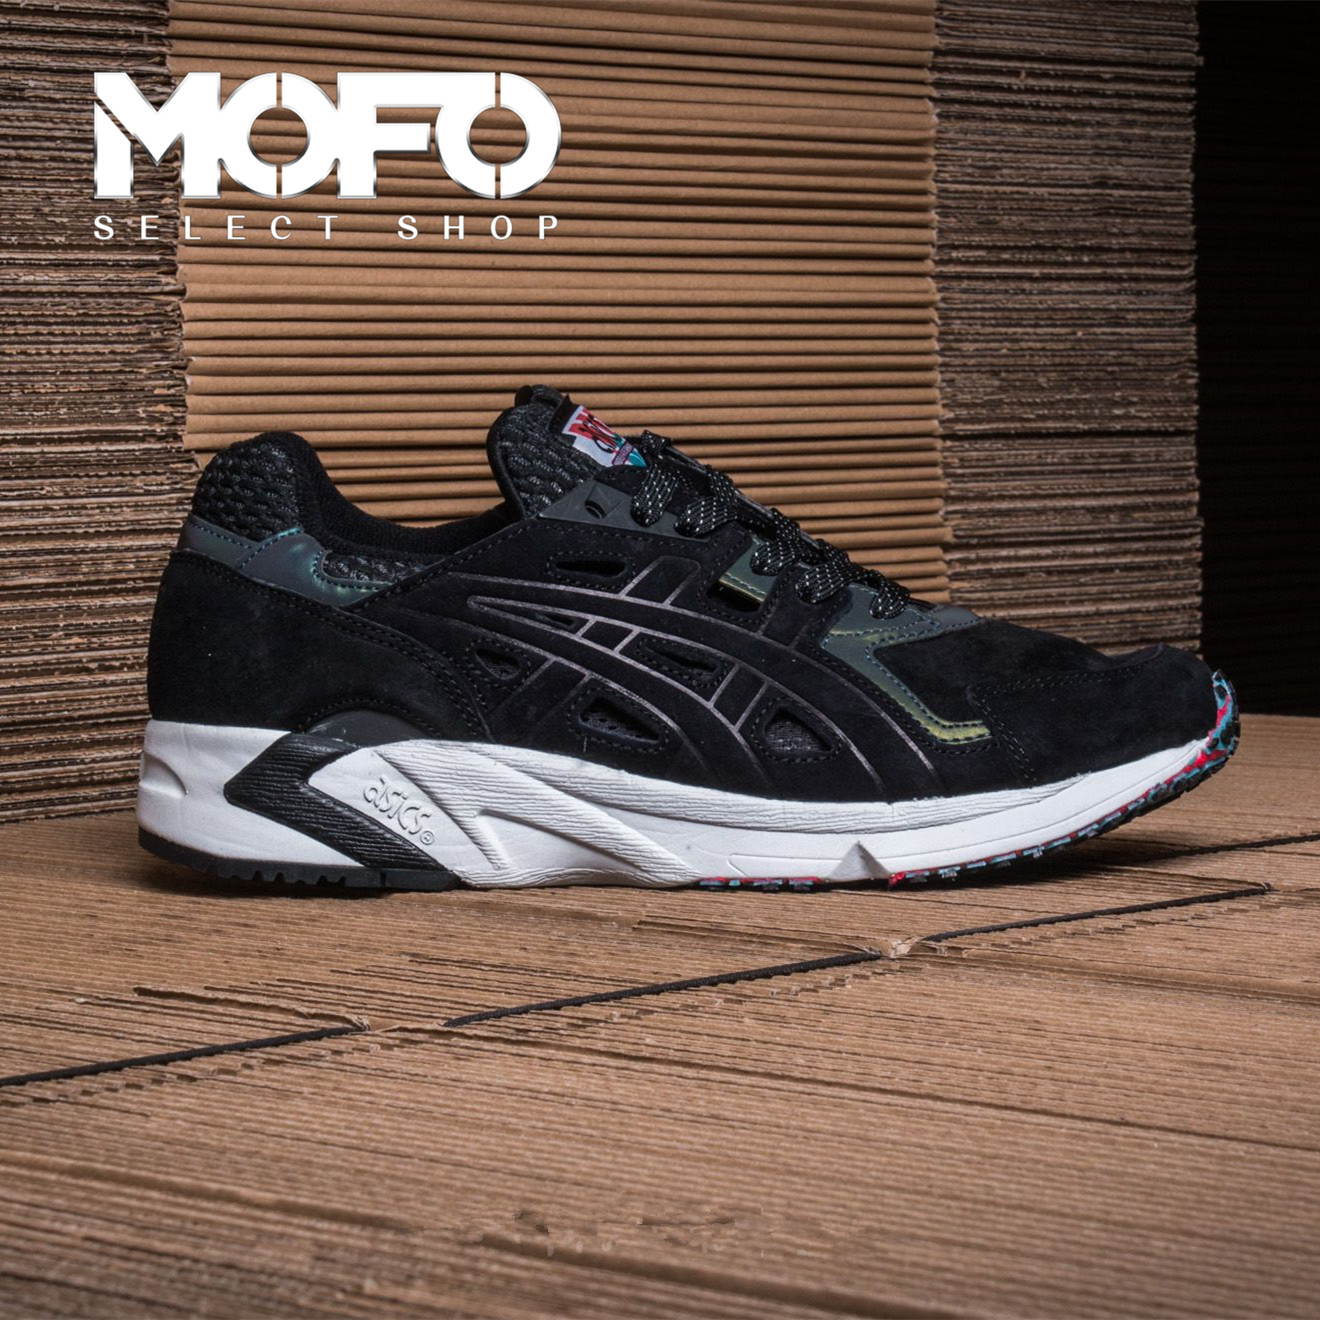 Asics GEL-DS Trainer OG Tiger Beetle H7P1L-9090 复古跑步鞋-SGshop c2a4077ad